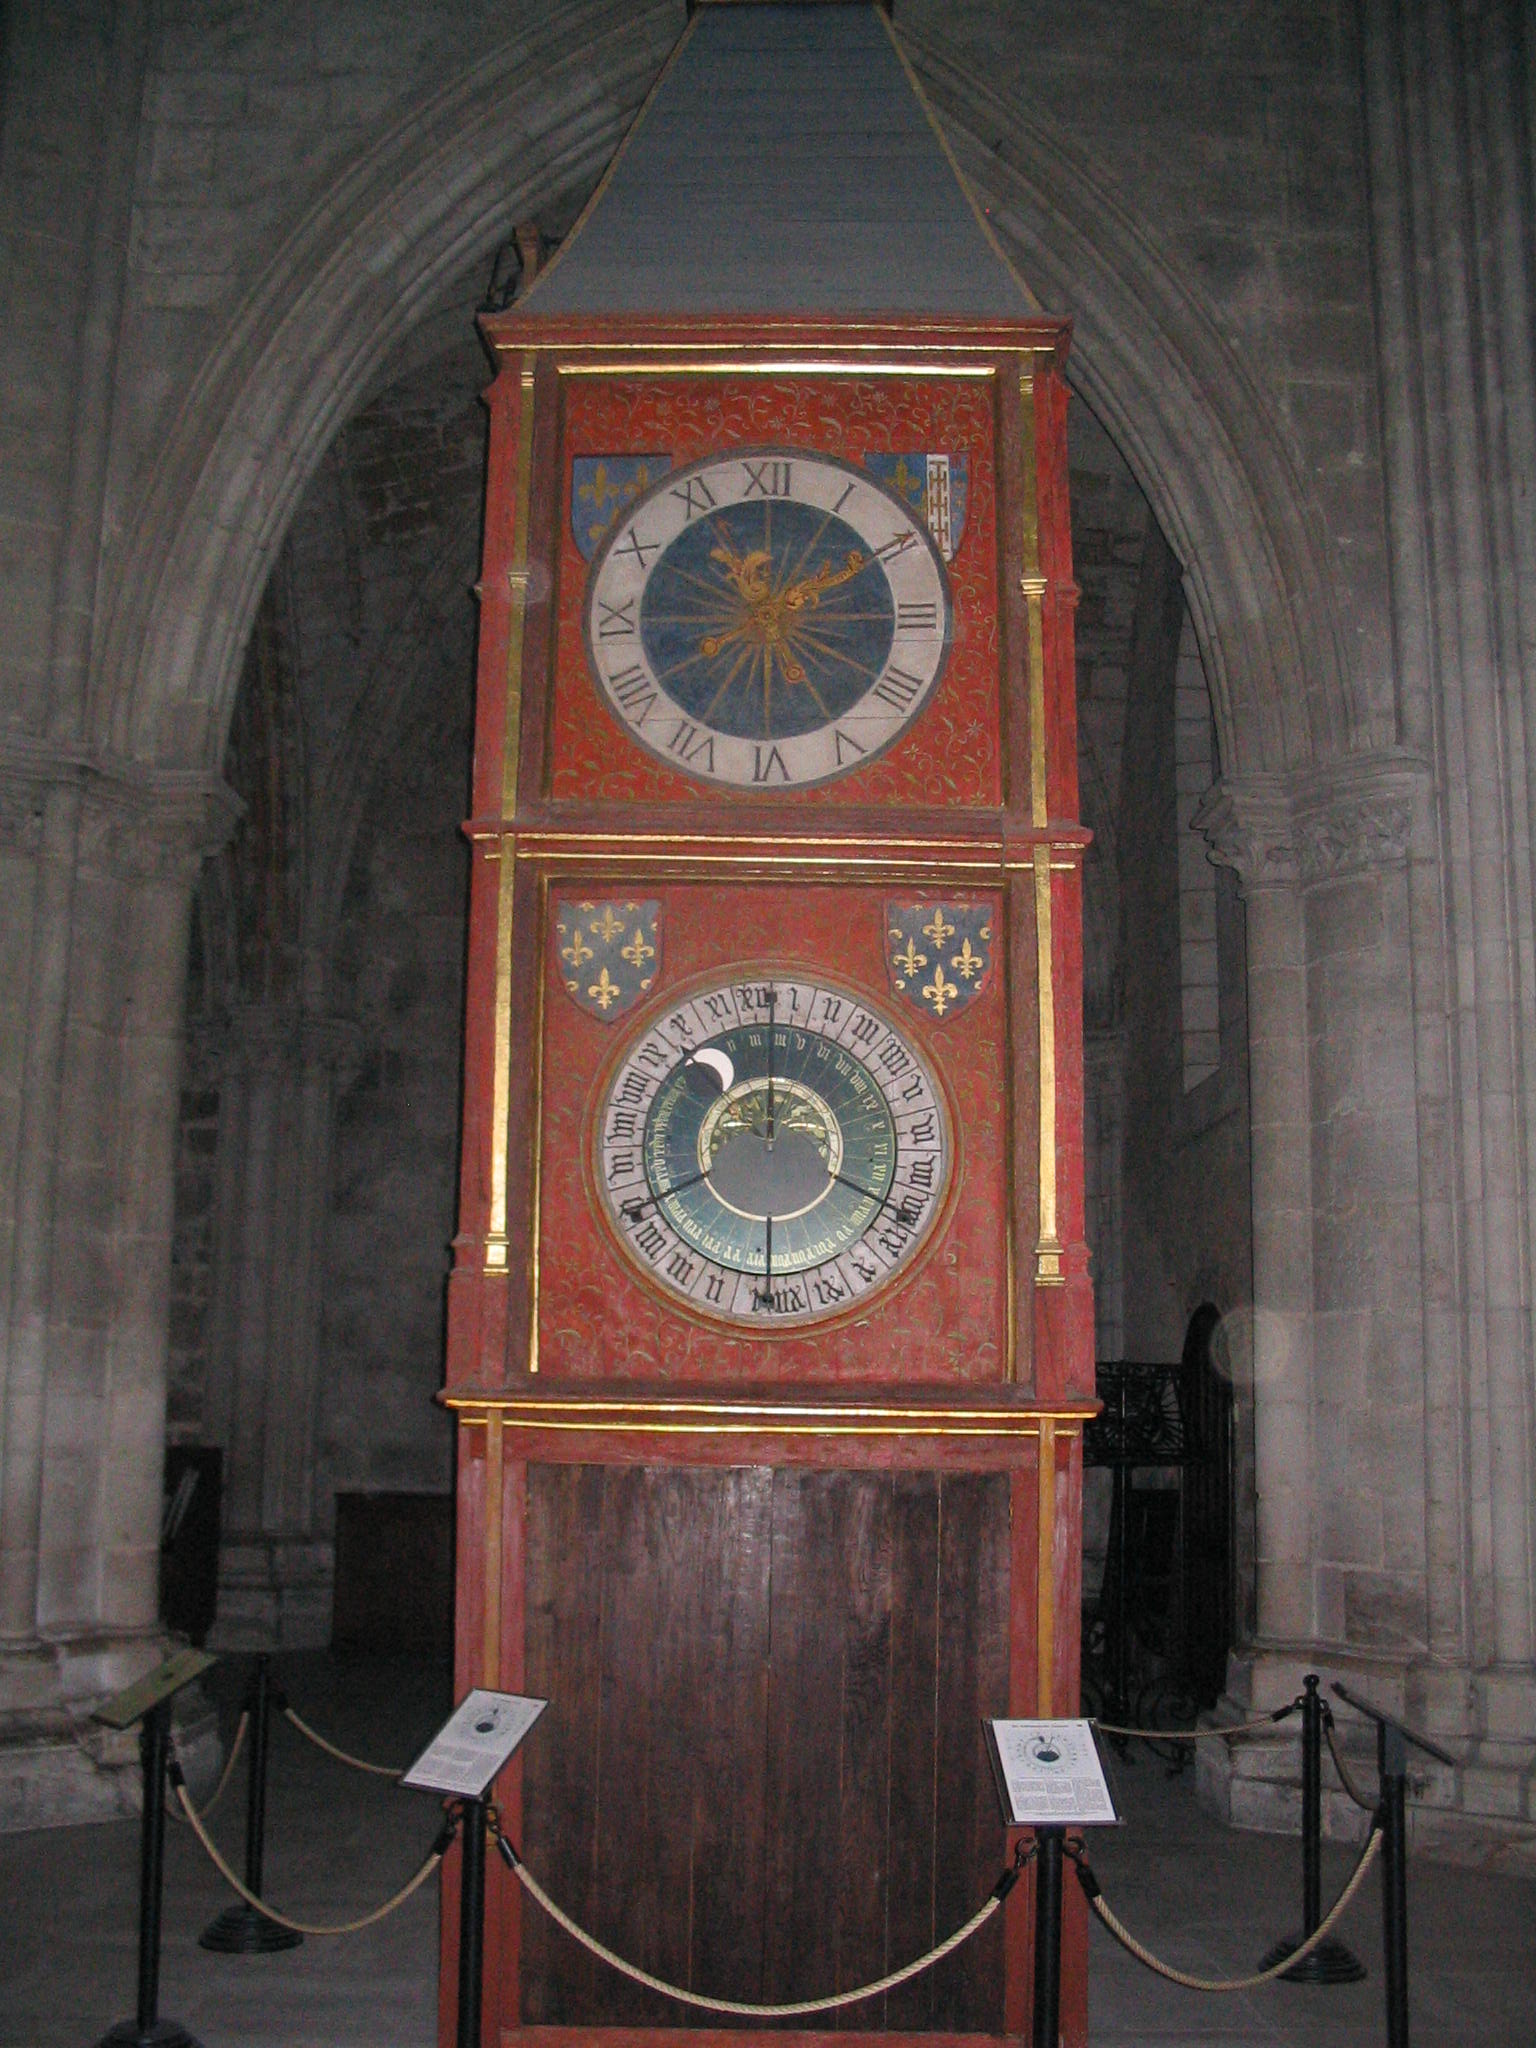 http://upload.wikimedia.org/wikipedia /commons/b/b2/Horloge_astronomique_Bourges.jpg